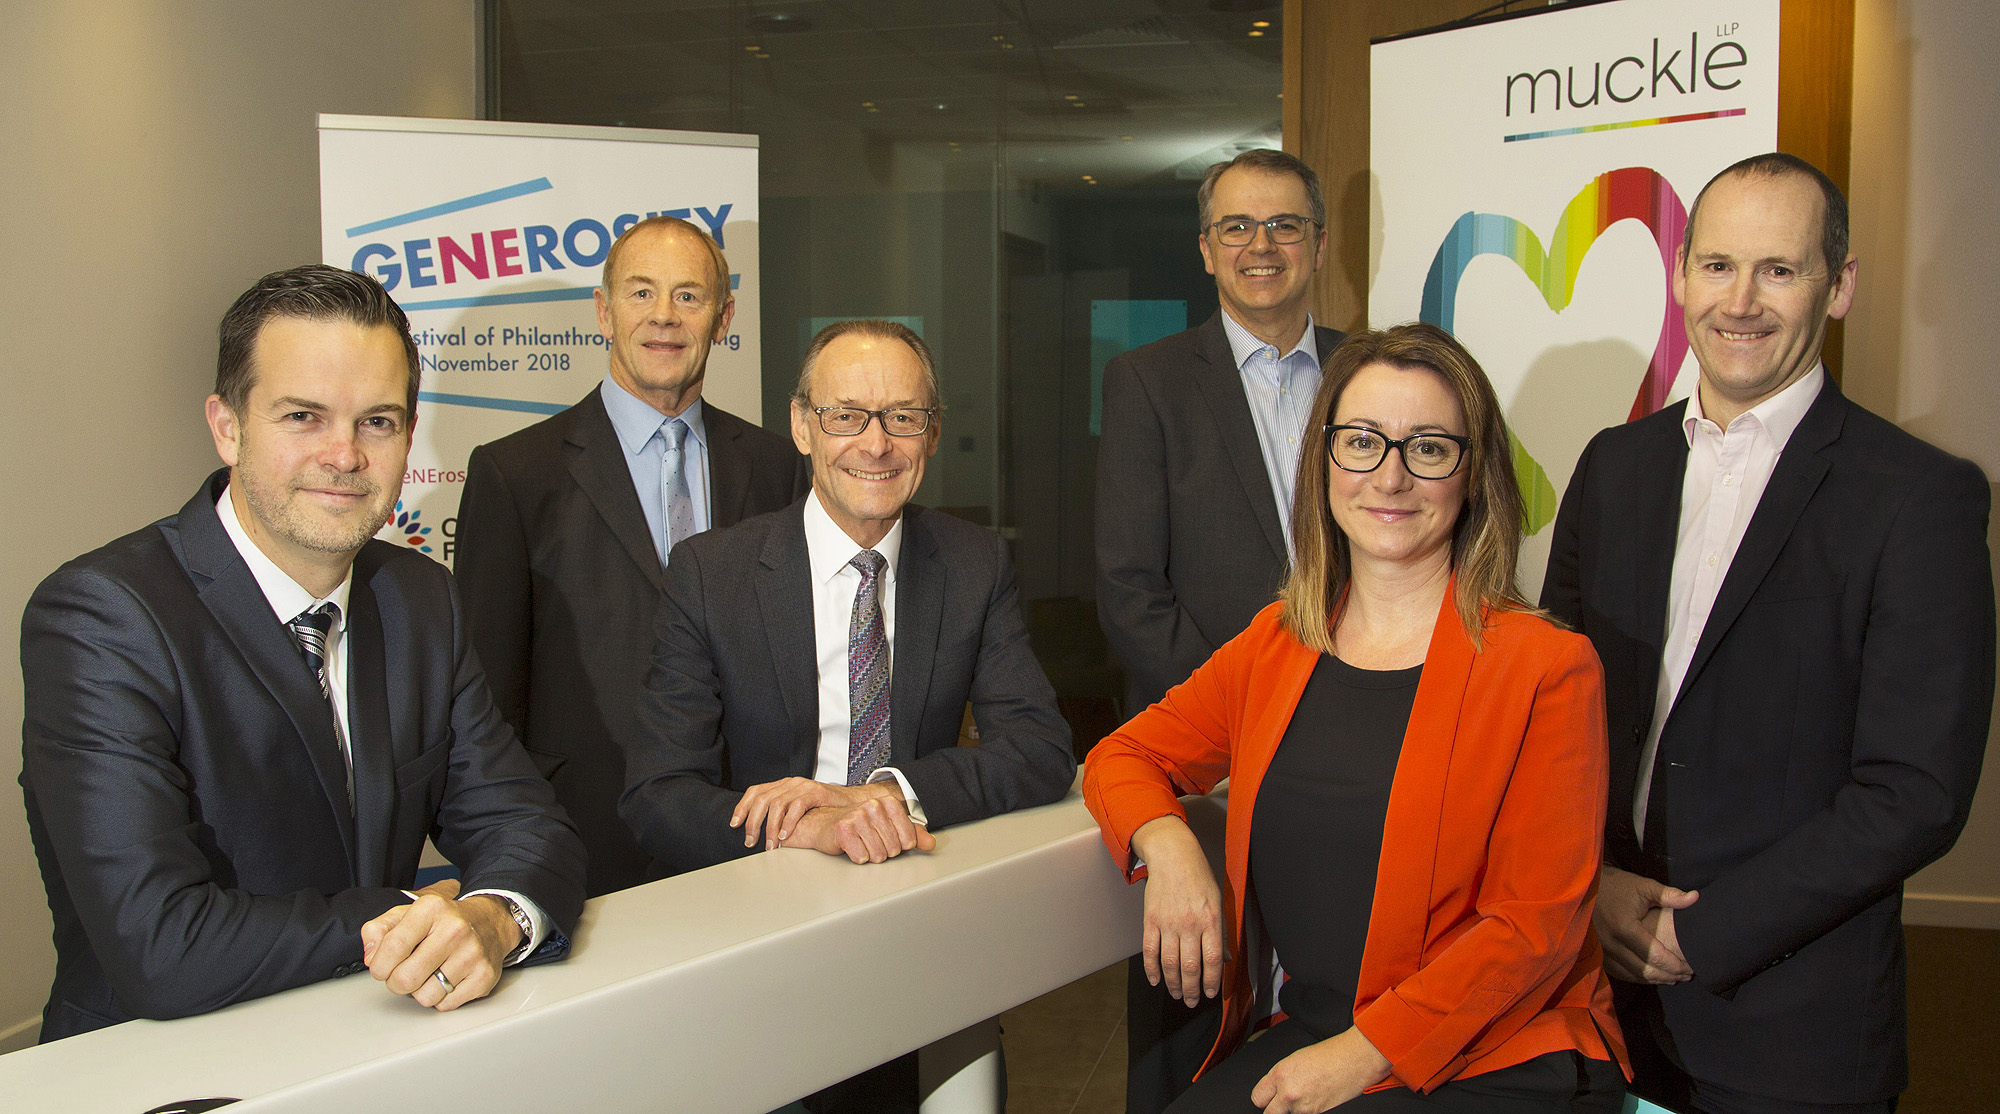 L-R: Matt Wilson, MD, Goodlabs; Nigel Smith, Chairman, Ringtons; Hugh Welch, Senior Partner, Muckle LLP; Andrew Haigh, CEO, Newcastle Building Society; Lisa Cappleman, Principal Advisor for Giving & Philanthropy, Community Foundation; Richard Hutton, Financial Director, Greggs.